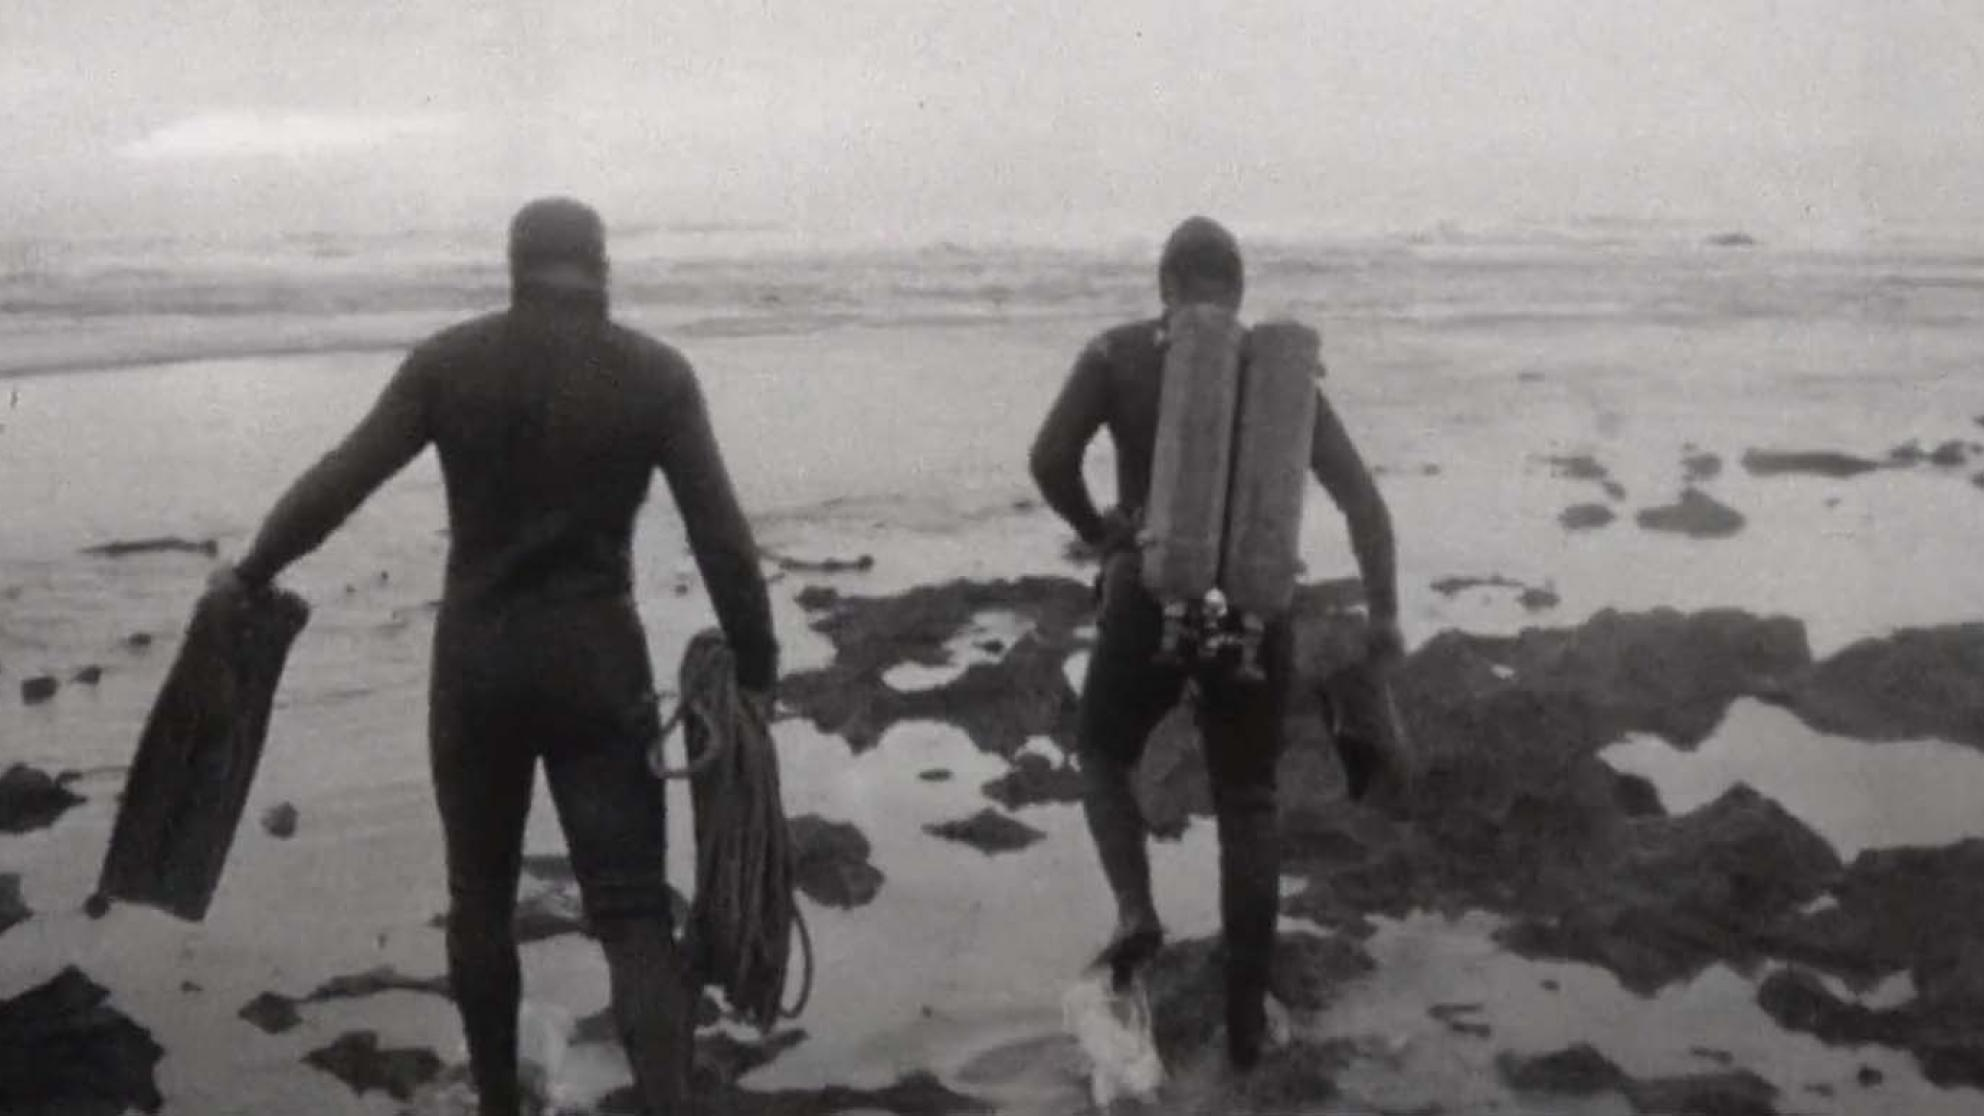 Two navy divers search for the missing prime minister, Harold Holt, along the Victorian coastline